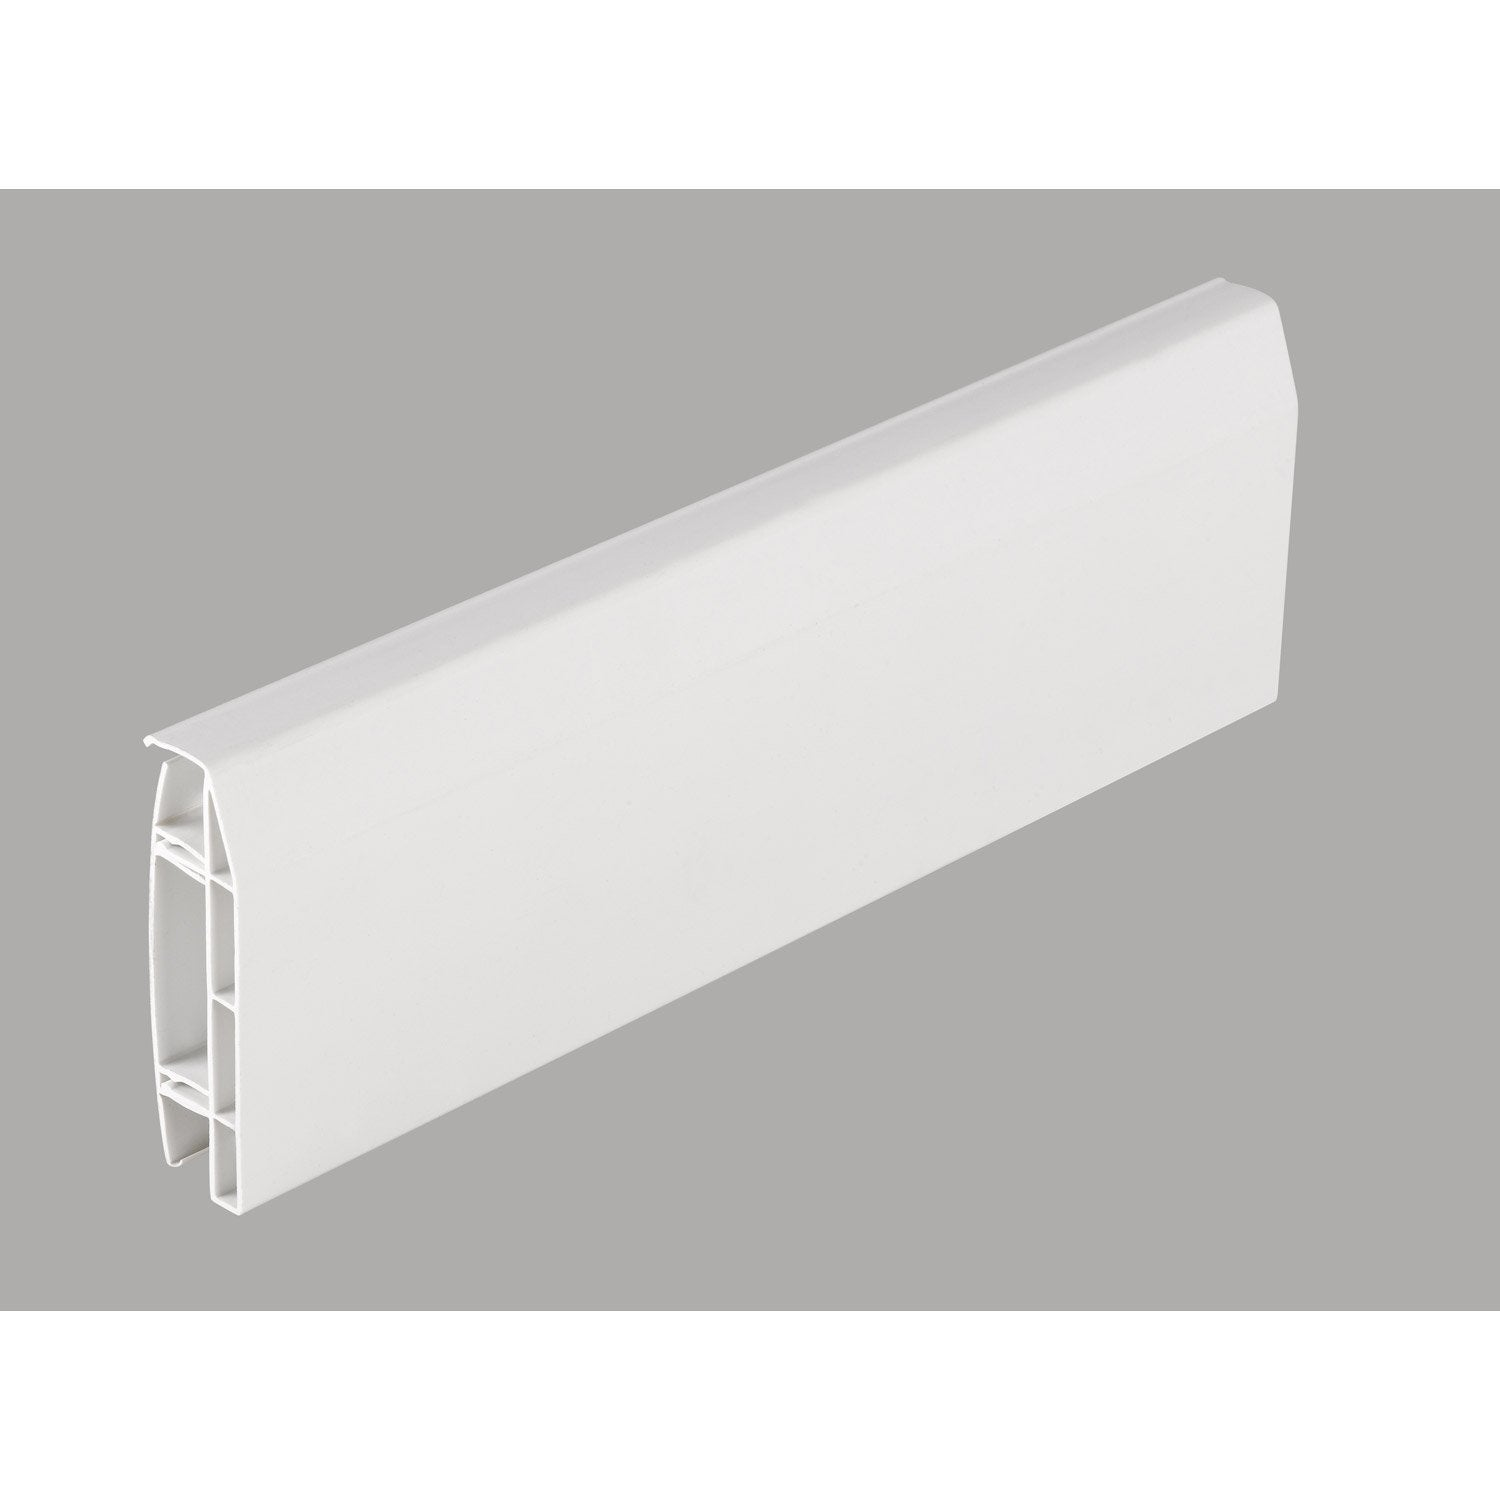 Plinthe de finition pvc blanc leroy merlin - Canvas pvc leroy merlin ...